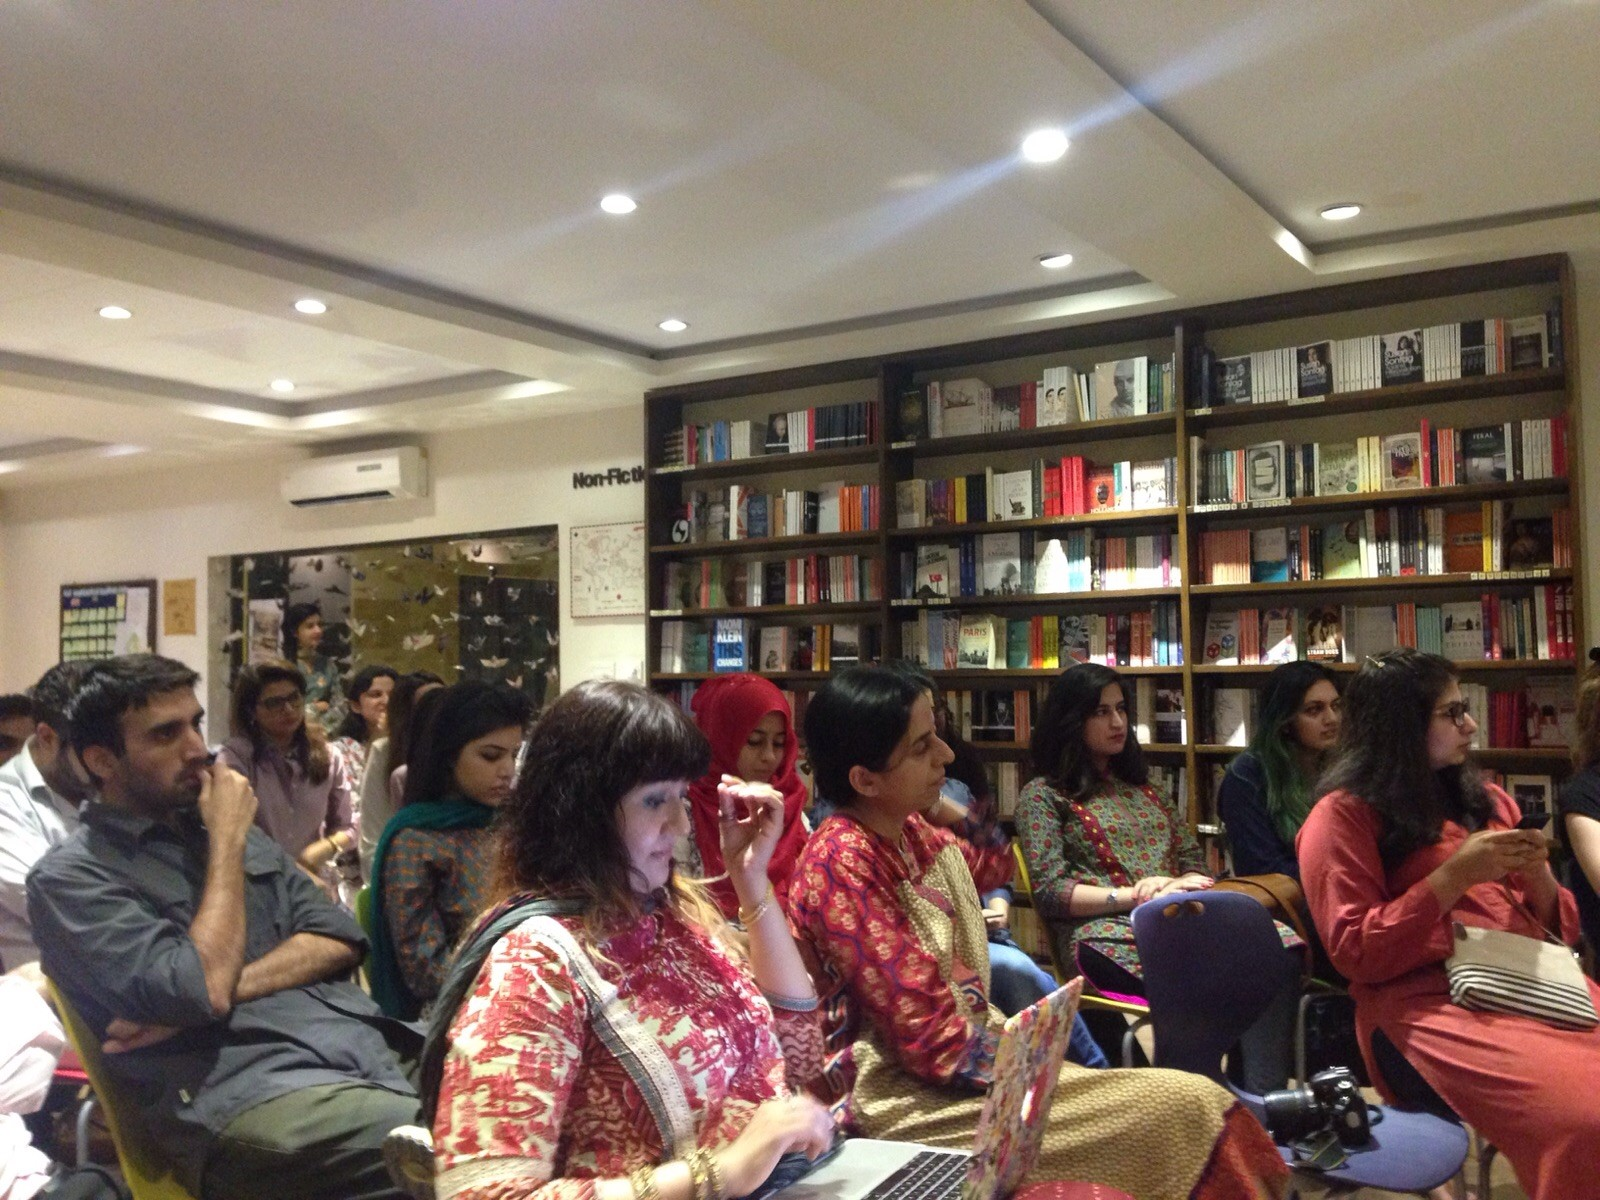 The audience at the event